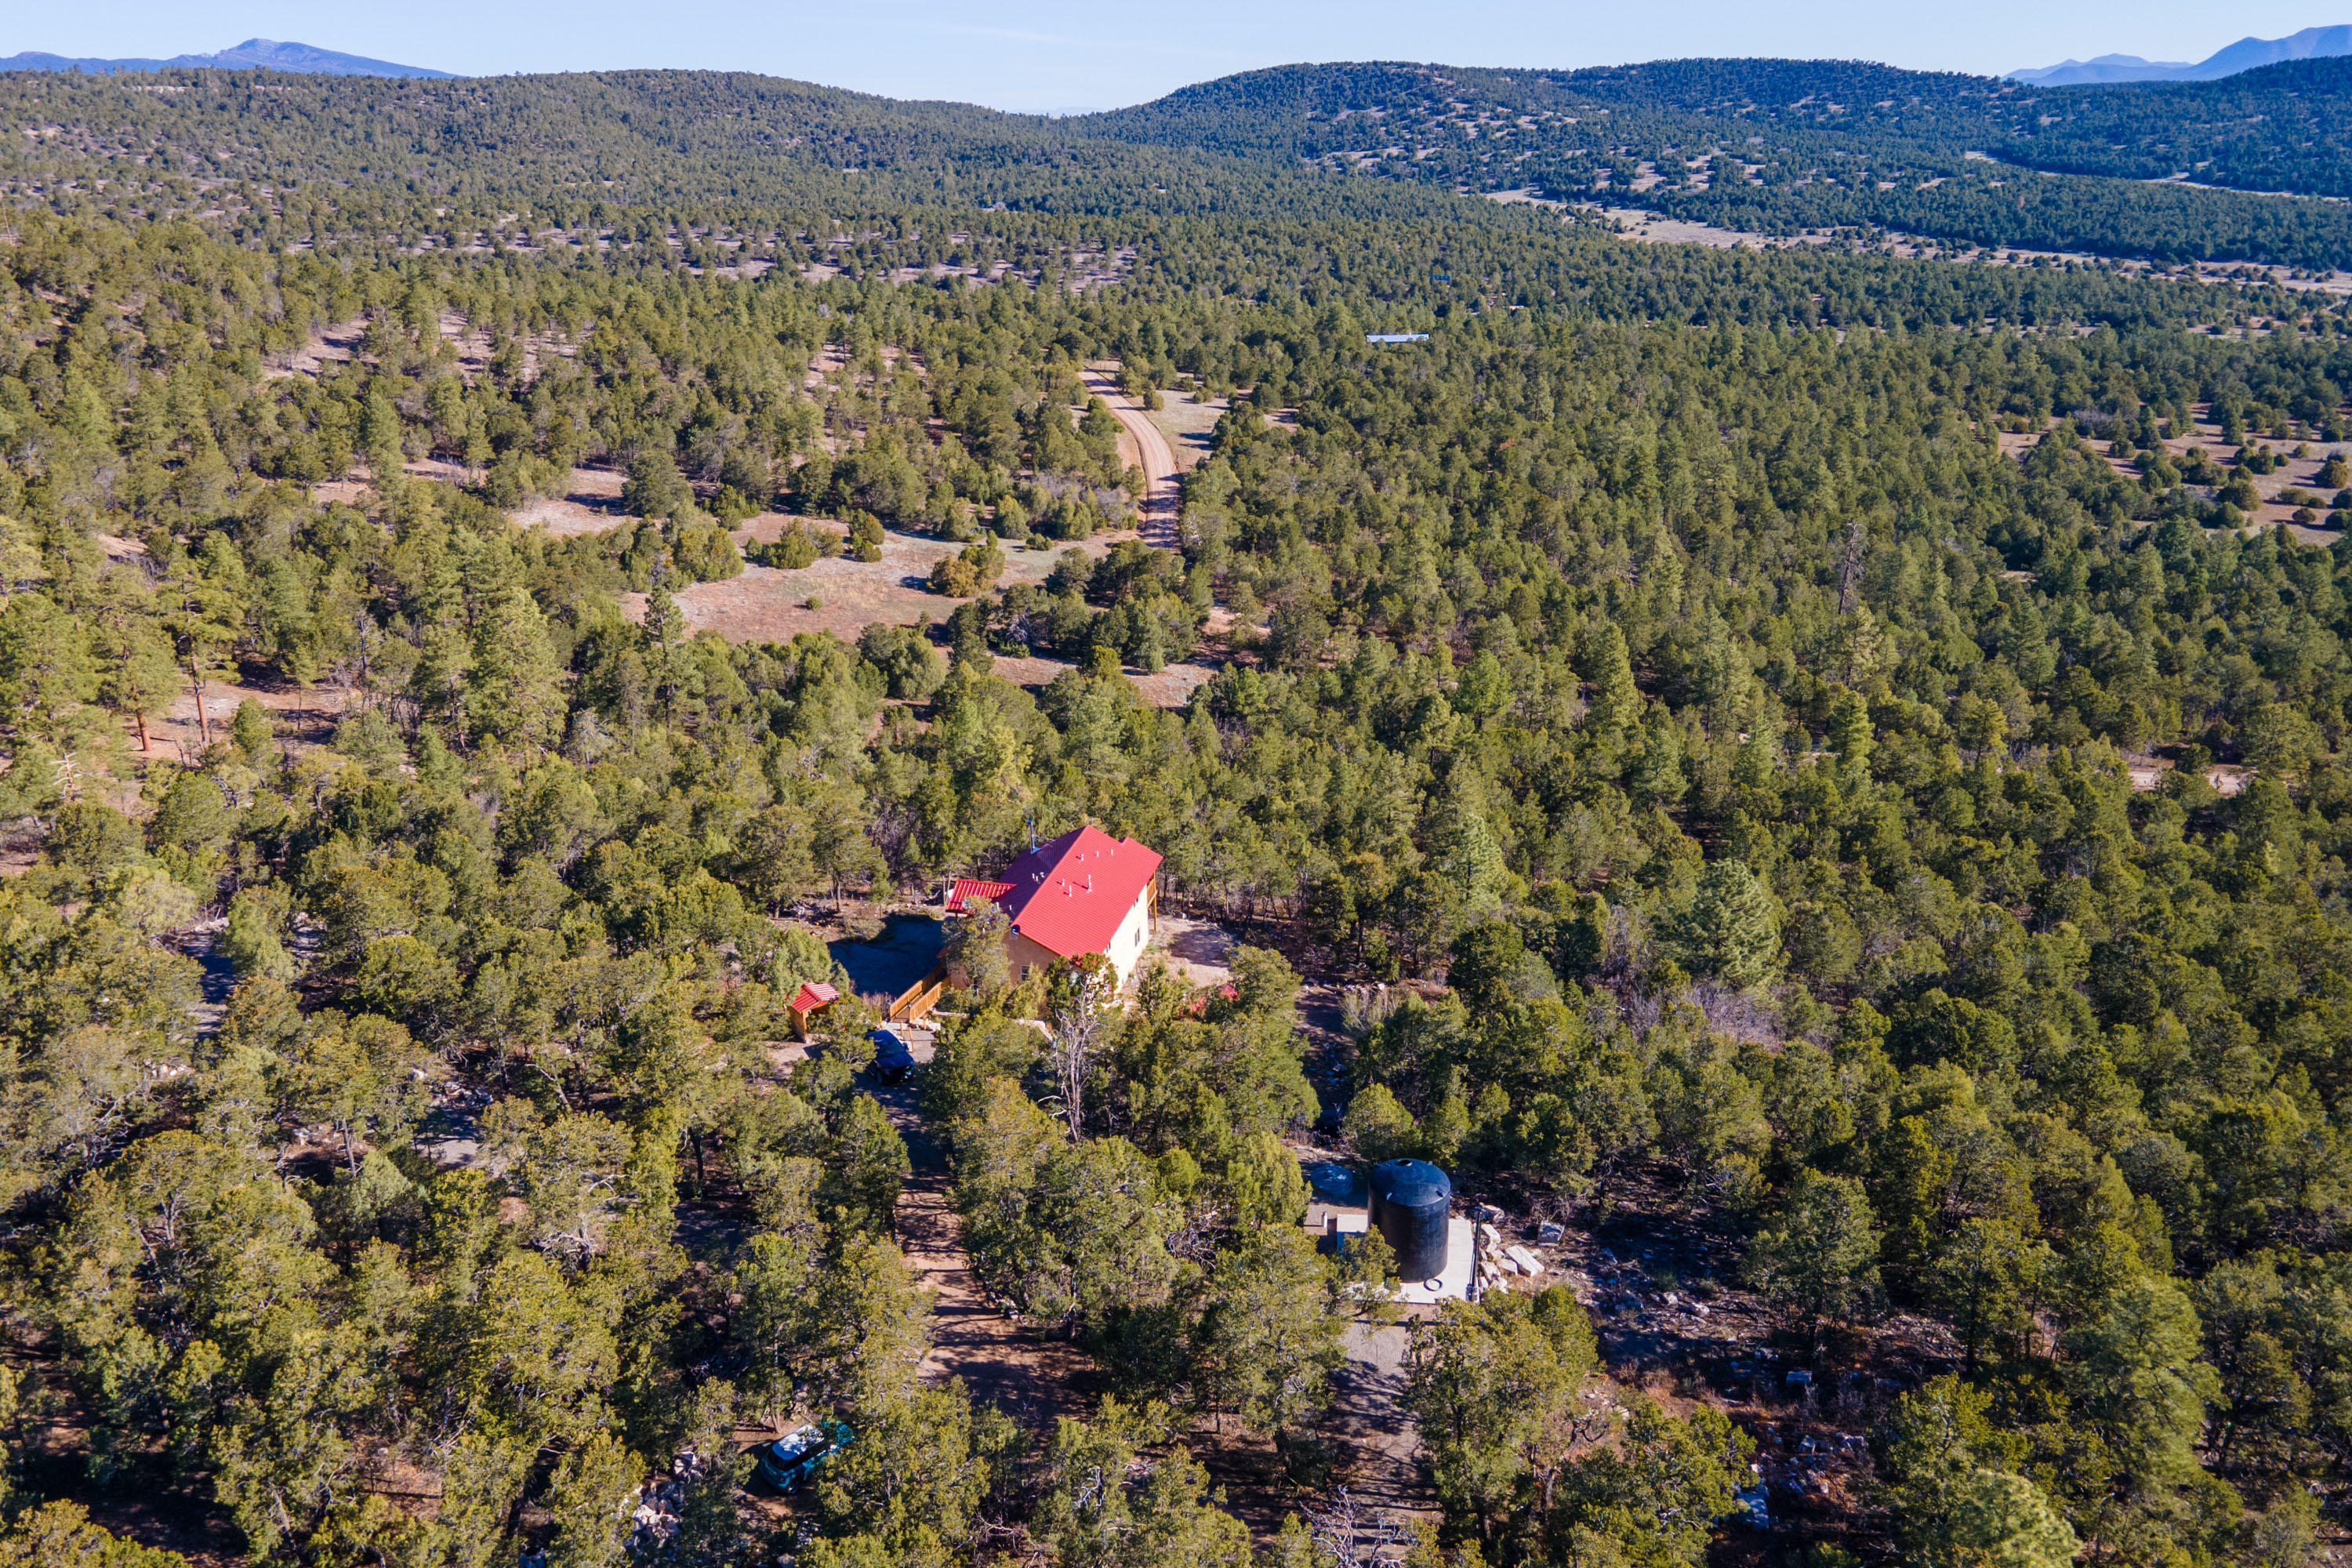 Your mountain retreat awaits nestled into the pine trees in the Cibola National Forest!! Located in the Woodland Hills Estates the sale includes a total of 5 acres, the current home site plus the adjacent lot.  This beautiful home was built in 2017 and boasts a wonderful open floor plan with tons of light, lots of windows, gorgeous wood floors, distinctive wood beam accents, custom cabinetry and a delightful kitchen with walk in pantry granite countertops, stainless appliances, farm sink and views of the forest. Spacious master bedroom retreat with a bright master bath with double sinks, beautiful shower and walk in closet.   Wonderful deck with sweeping views.  Two additional bedrooms with jack and jill bath.  Super garage with tons of storage and extra workshop space.